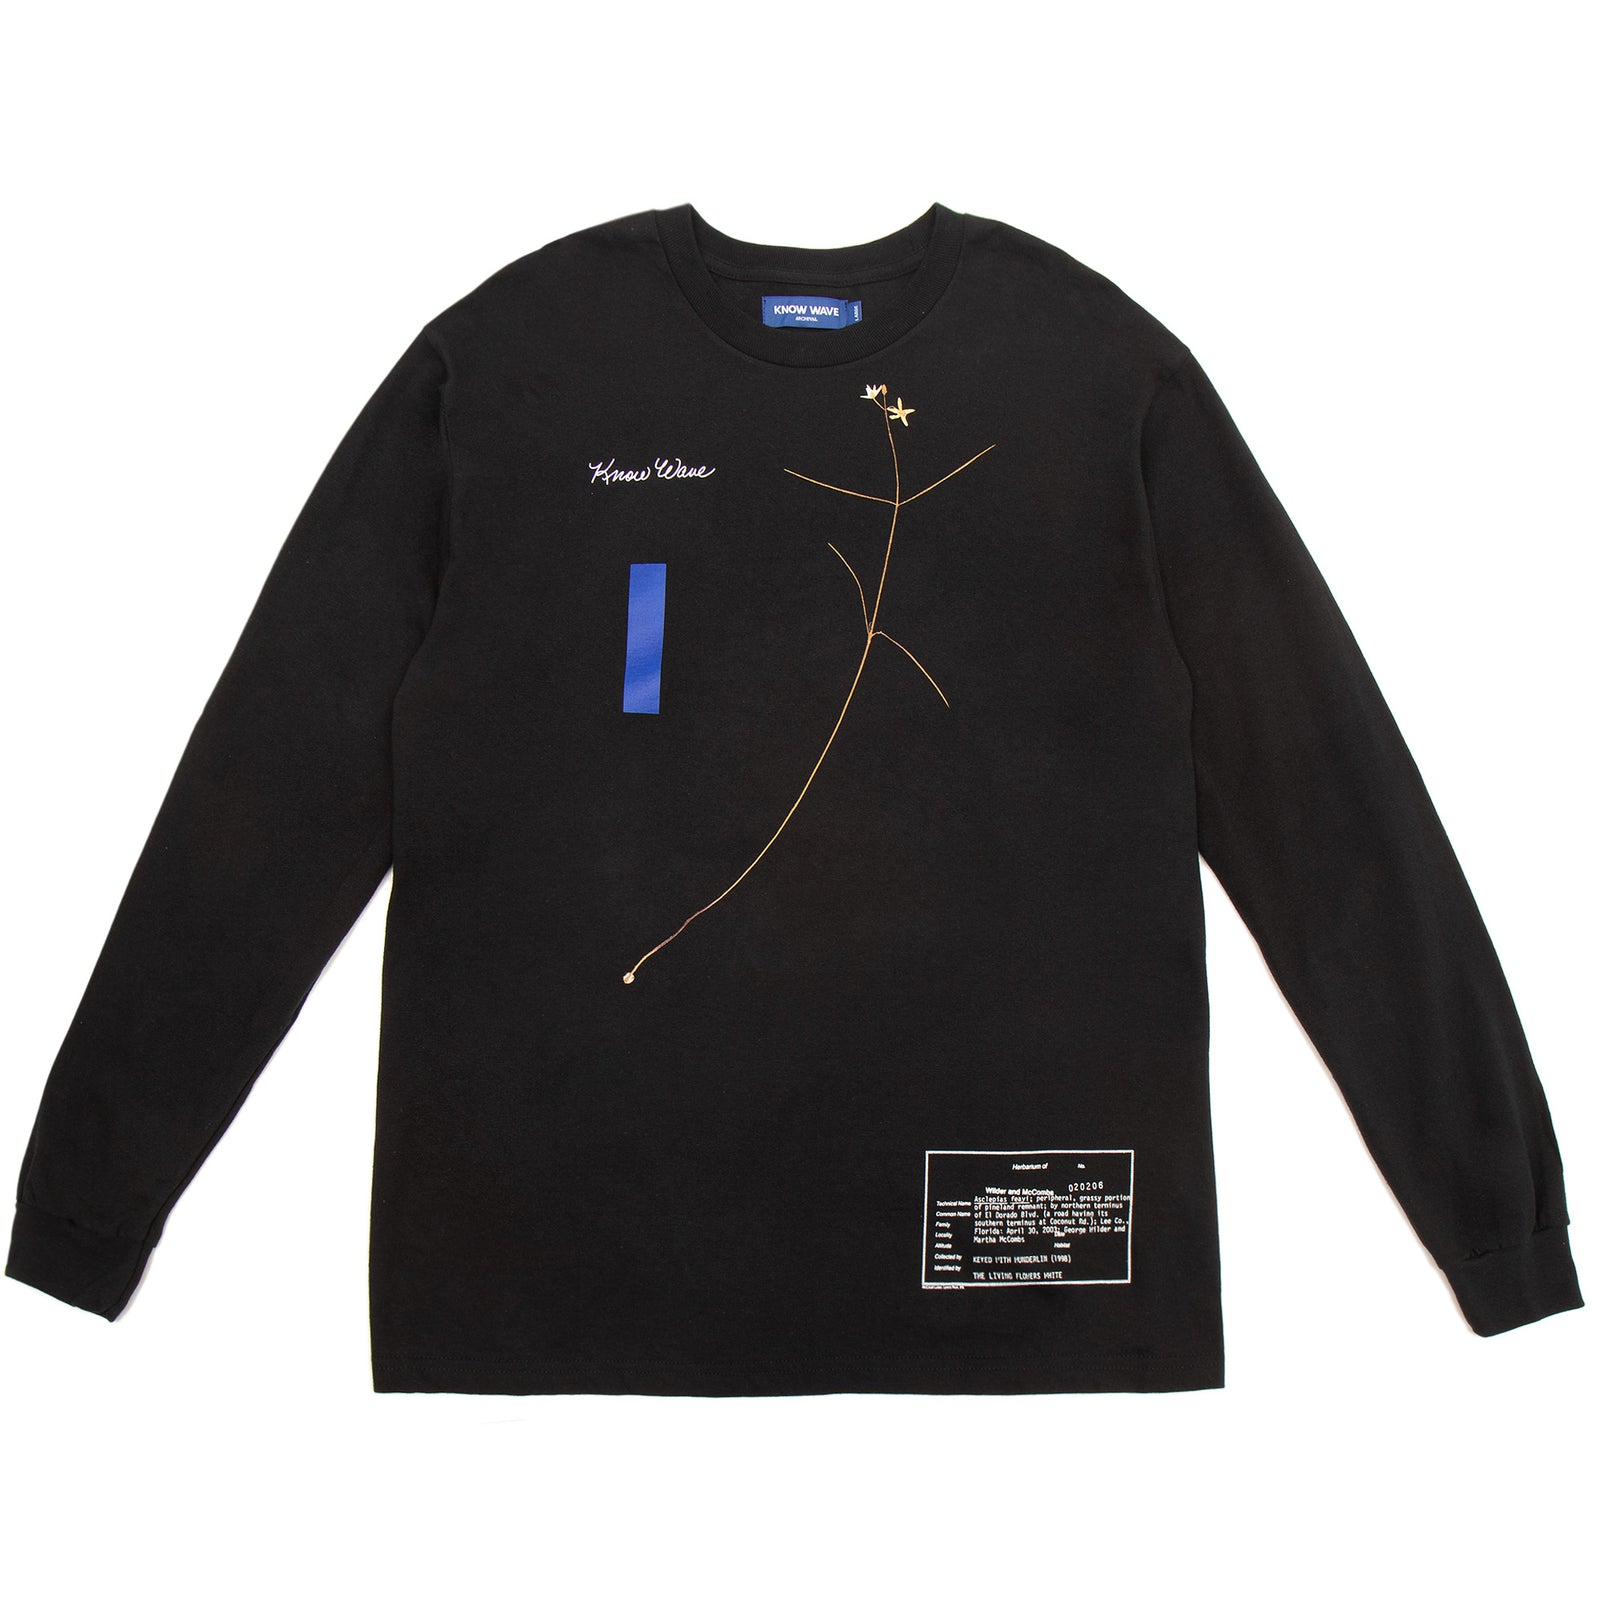 WILDER AND MCCOMBS L/S T